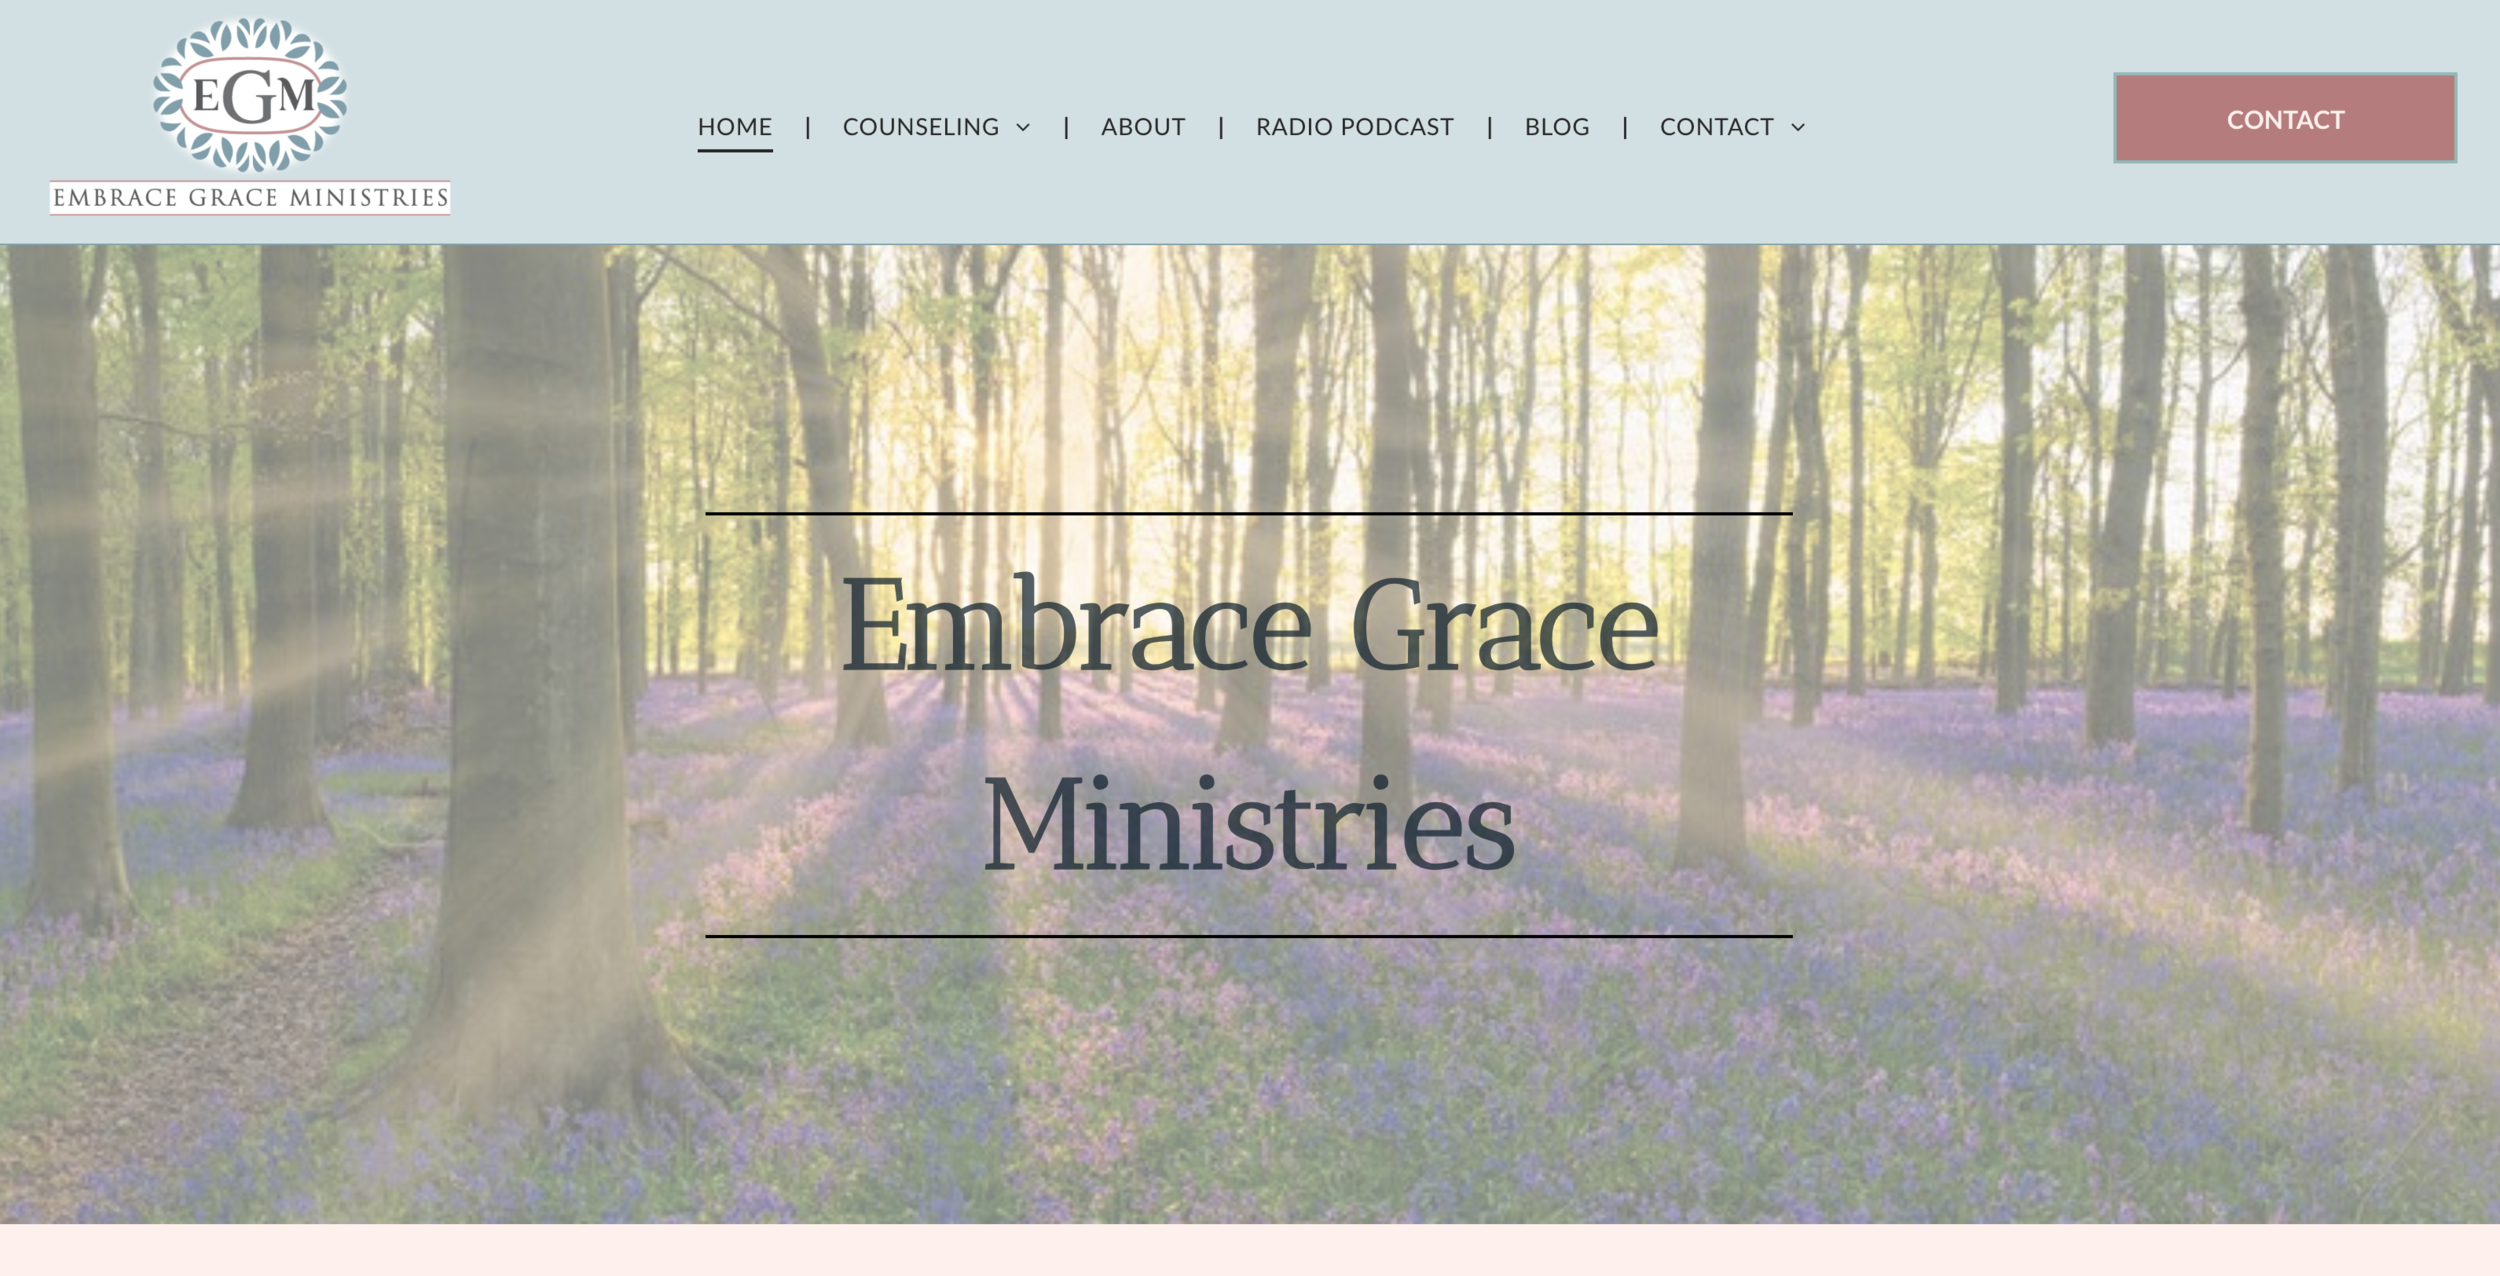 Embrace Grace Ministries - Leanne Dalpe - Derry, NH  |  Embrace Grace RadioEmbrace Grace Ministries was born out of a deep desire to show the love of Christ by supporting, equipping and enabling individuals, couples and families to live victorious Christian lives. I endeavor through counseling, teaching, writing, and speaking, to encourage people to draw near to the Lord, trust Him, rest in His love, and honor and glorify Him with their lives. This is a ministry founded on the faithfulness of our Lord Jesus Christ, and is one of hope, faith, love, compassion, grace, and mercy.